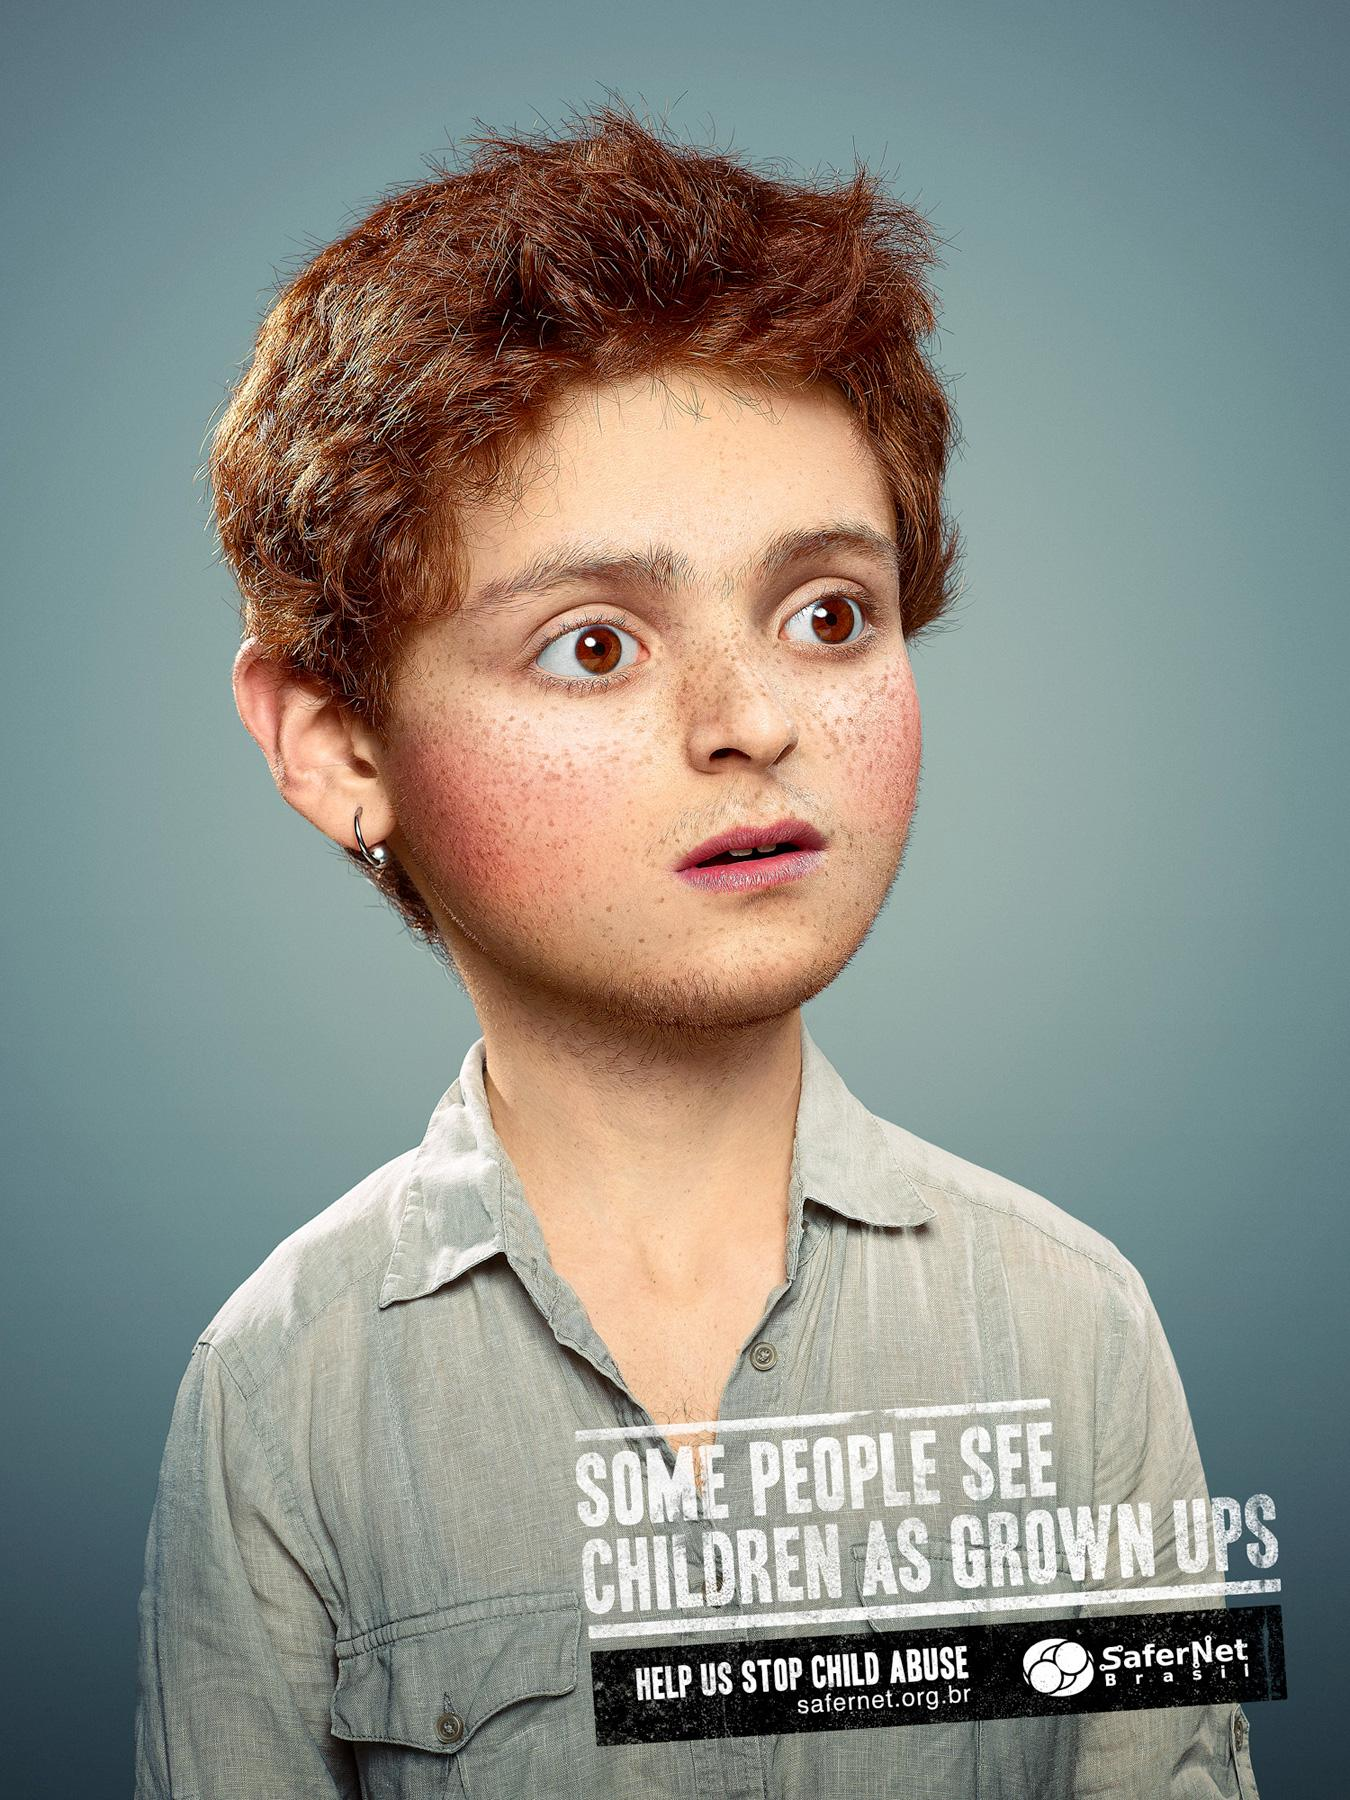 Safernet Brasil Print Ad -  Grown ups, 2